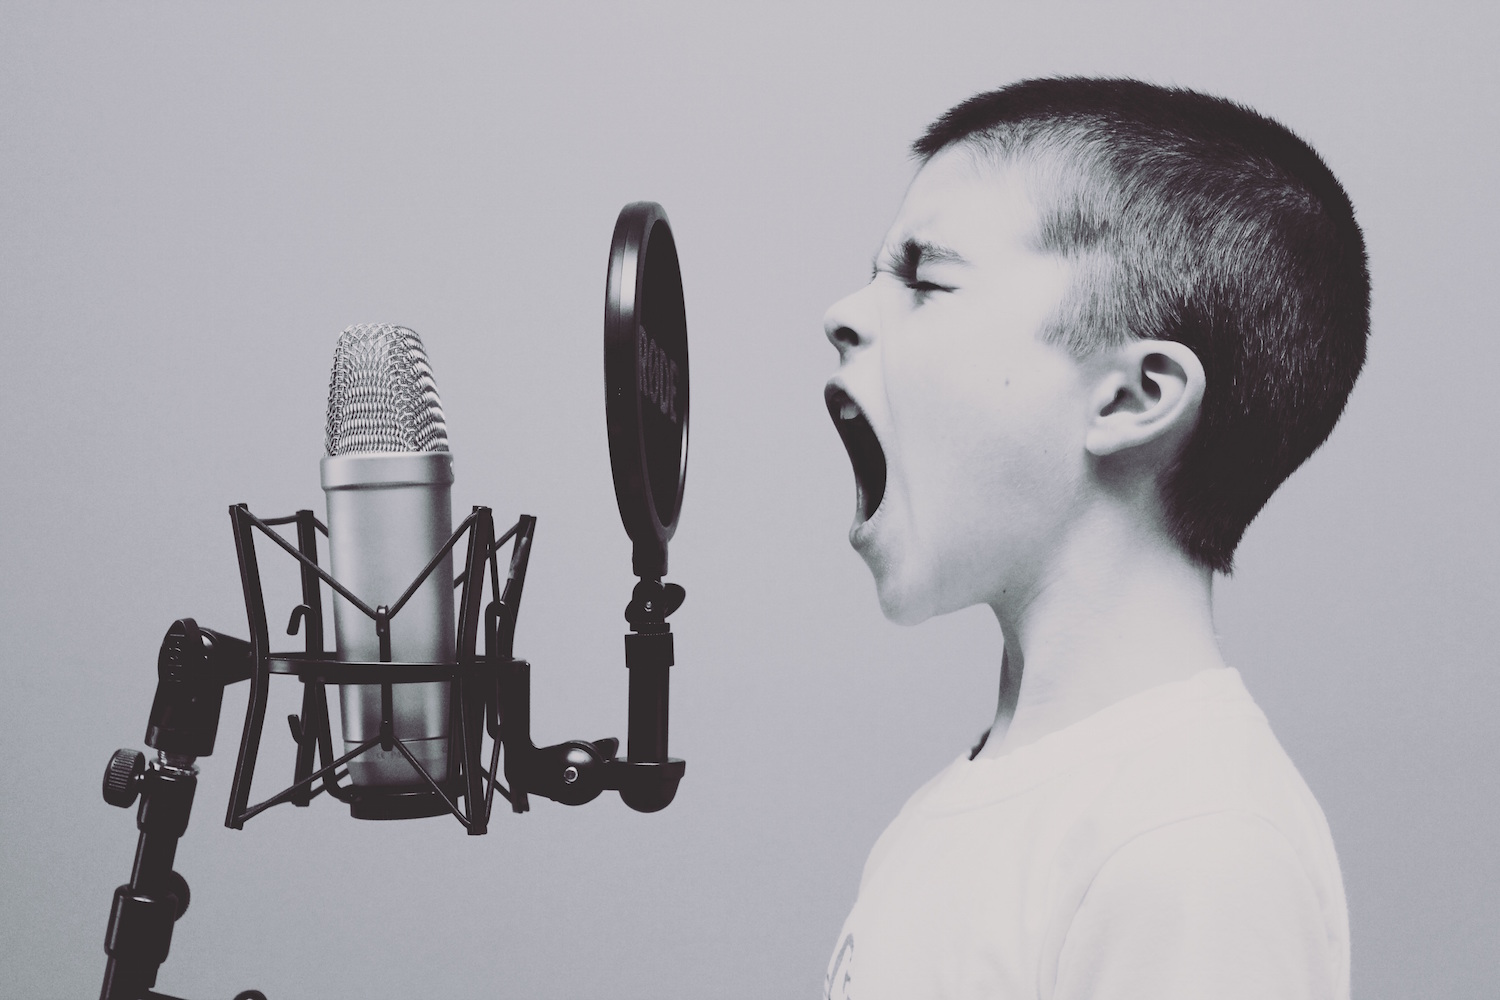 Podcasting: How to Sound Professional Even if You're a Beginner